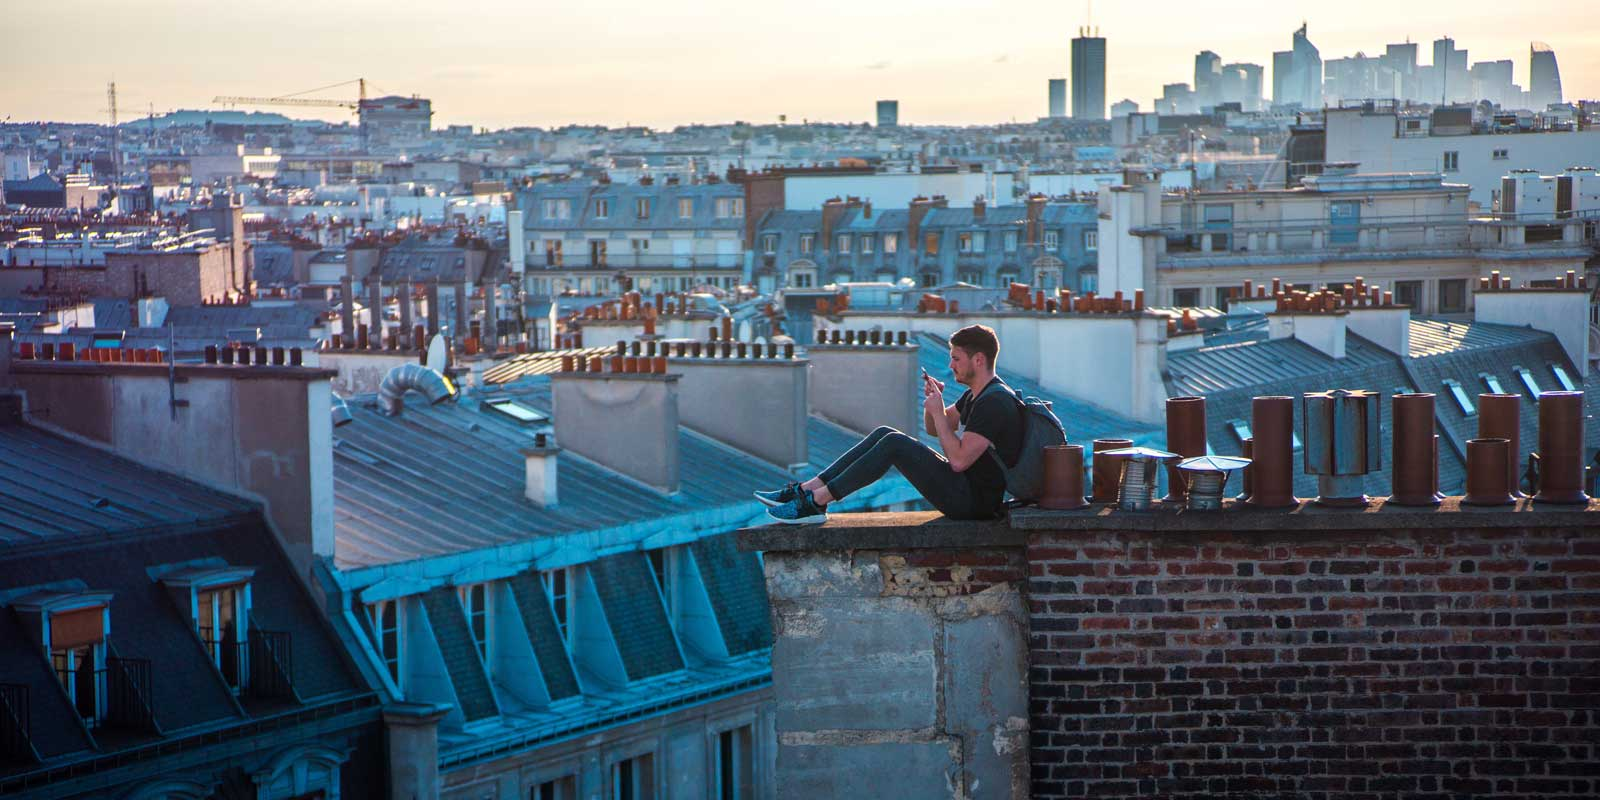 Man sits on the rooftop of a building in Paris.